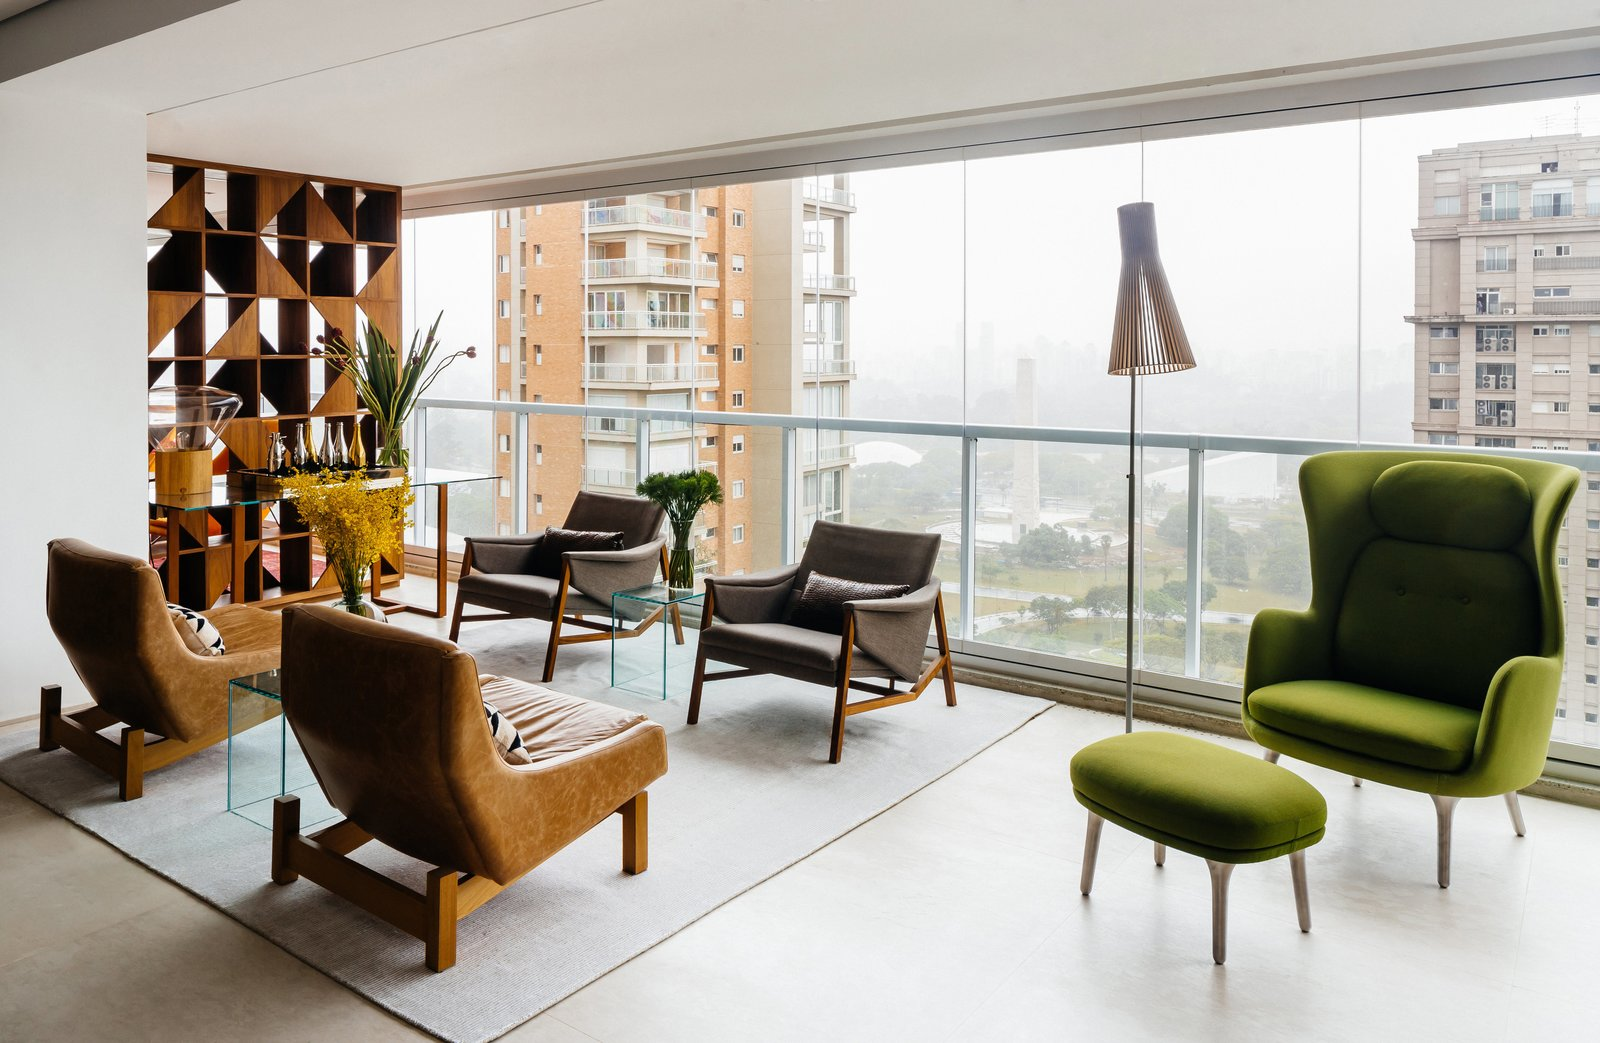 Living, Chair, Recliner, Console Tables, Coffee Tables, End Tables, Table, Lamps, and Rug In an apartment overlooking São Paulo's Ibirapuera Park—completed in 1954 to commemorate the city's 400th anniversary—the furniture is as distinctive as the view. Architect Flavio Castro of FCstudio worked closely with the residents to update and outfit the home, which is appointed with a mix of contemporary and Brazilian modern classics. A pair of Sérgio Rodrigues's Paraty armchairs (in foreground)—designed for Brasilia's Itamaraty Palace in 1963—face a duo of Jader Almeida's Isa armchairs in the living area. The green Ro lounge and ottoman are by Jaime Hayon for Fritz Hansen.  Best Living Lamps Recliner Photos from Overlooking a Niemeyer Masterpiece, This Flat is Filled with Brazilian Modern Gems